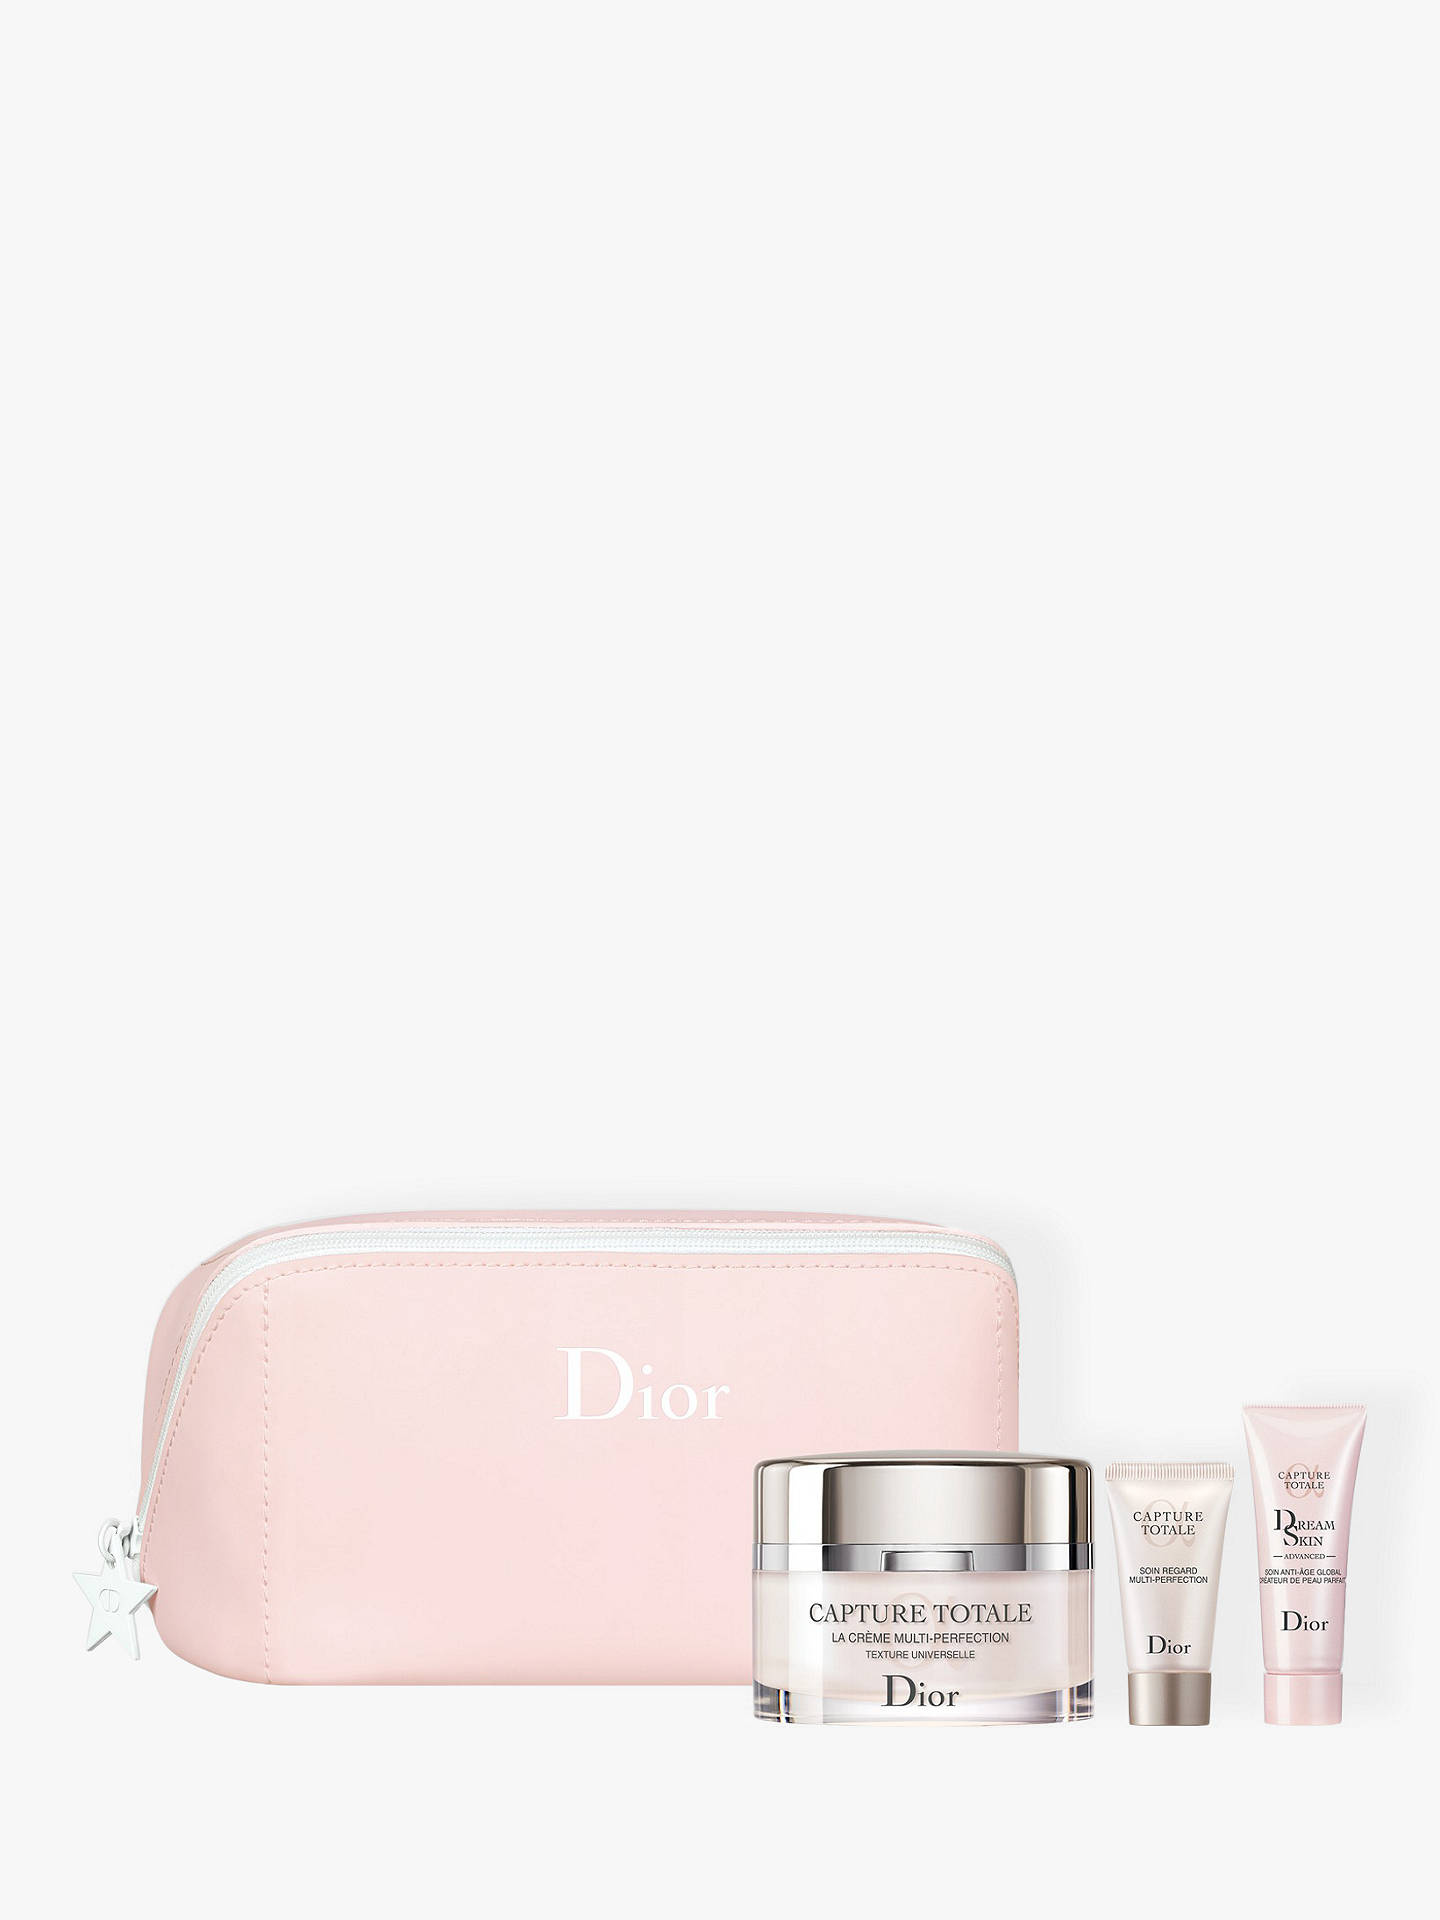 Buy Dior Capture Totale Skincare Gift Set Online at johnlewis.com